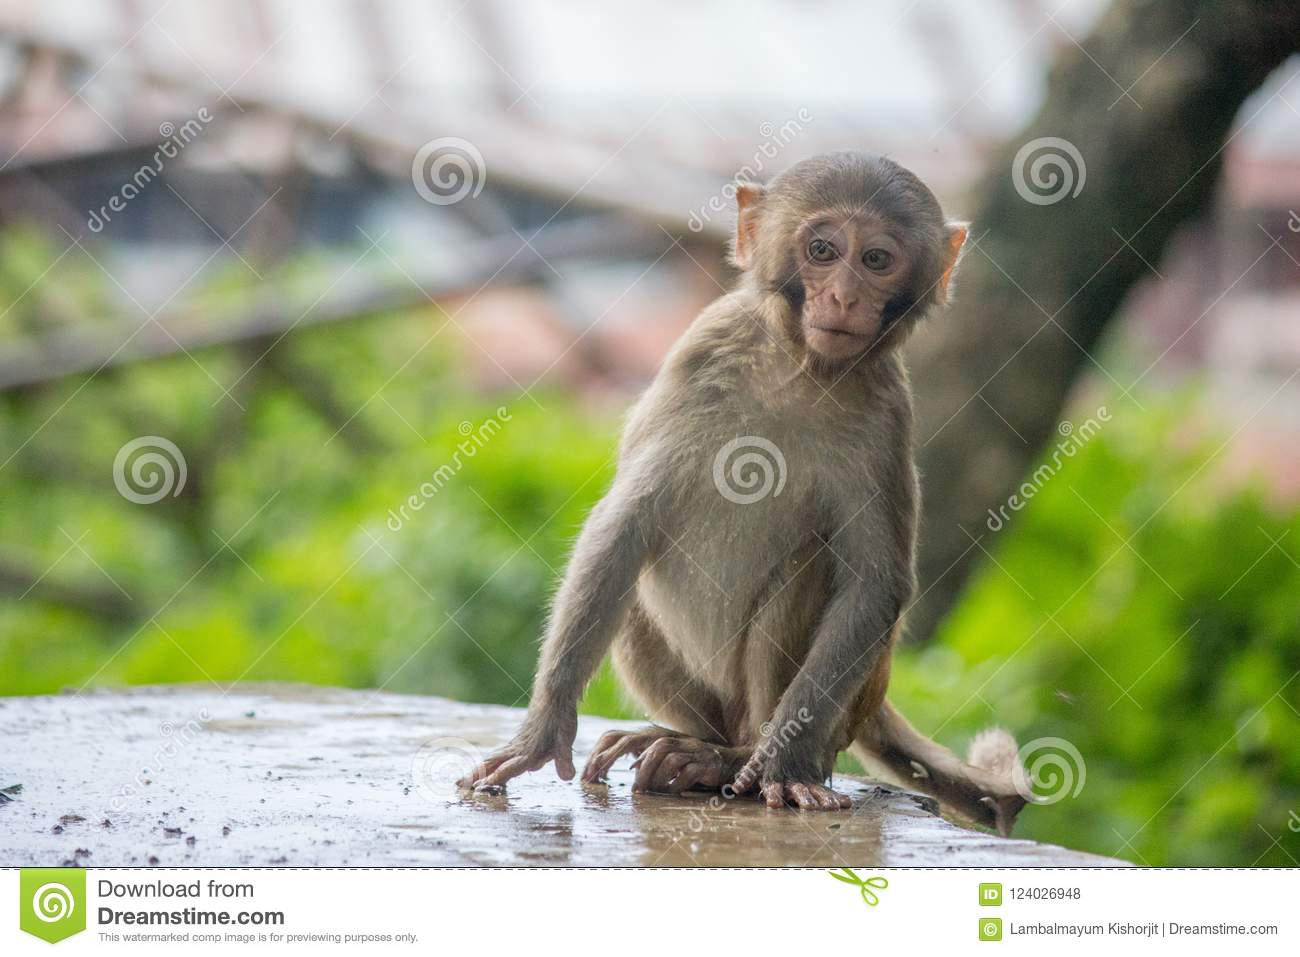 Portrait Of A Monkey With Broken Lip Innocent And Scary Mammals Wildlife Pet Drinking Water Climbing On Tree